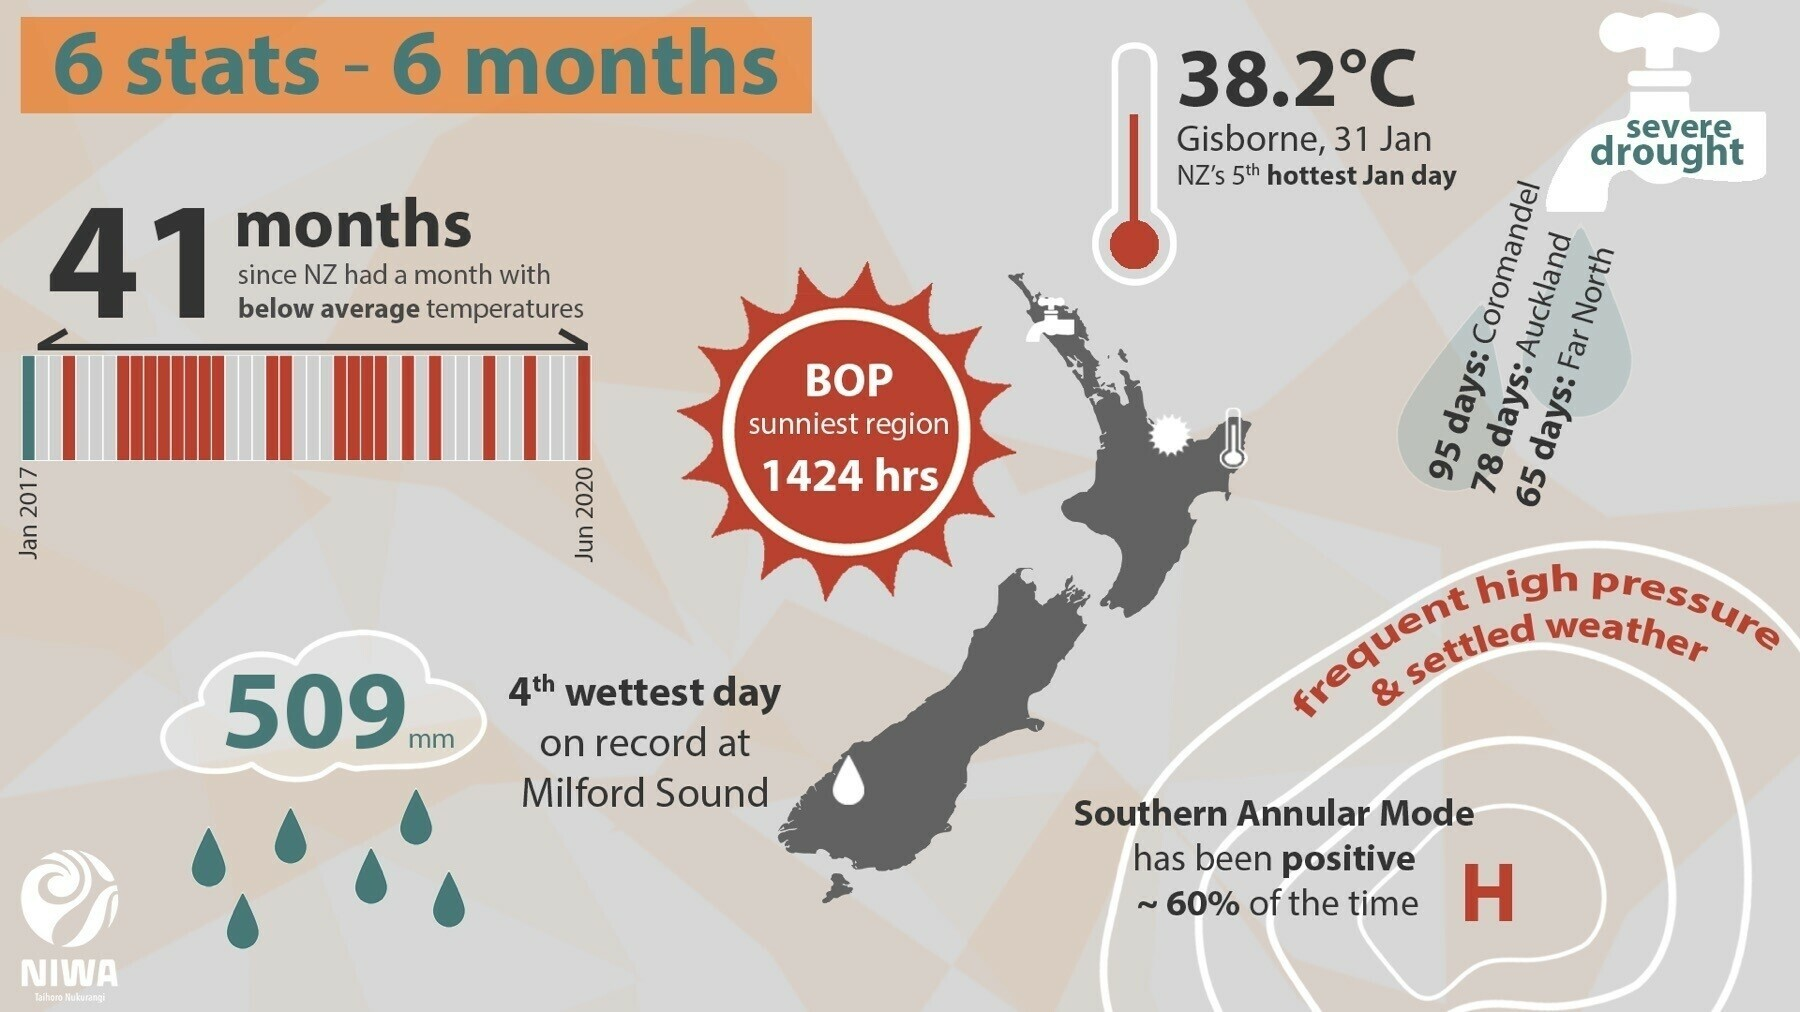 Image with key NZ weather stats.